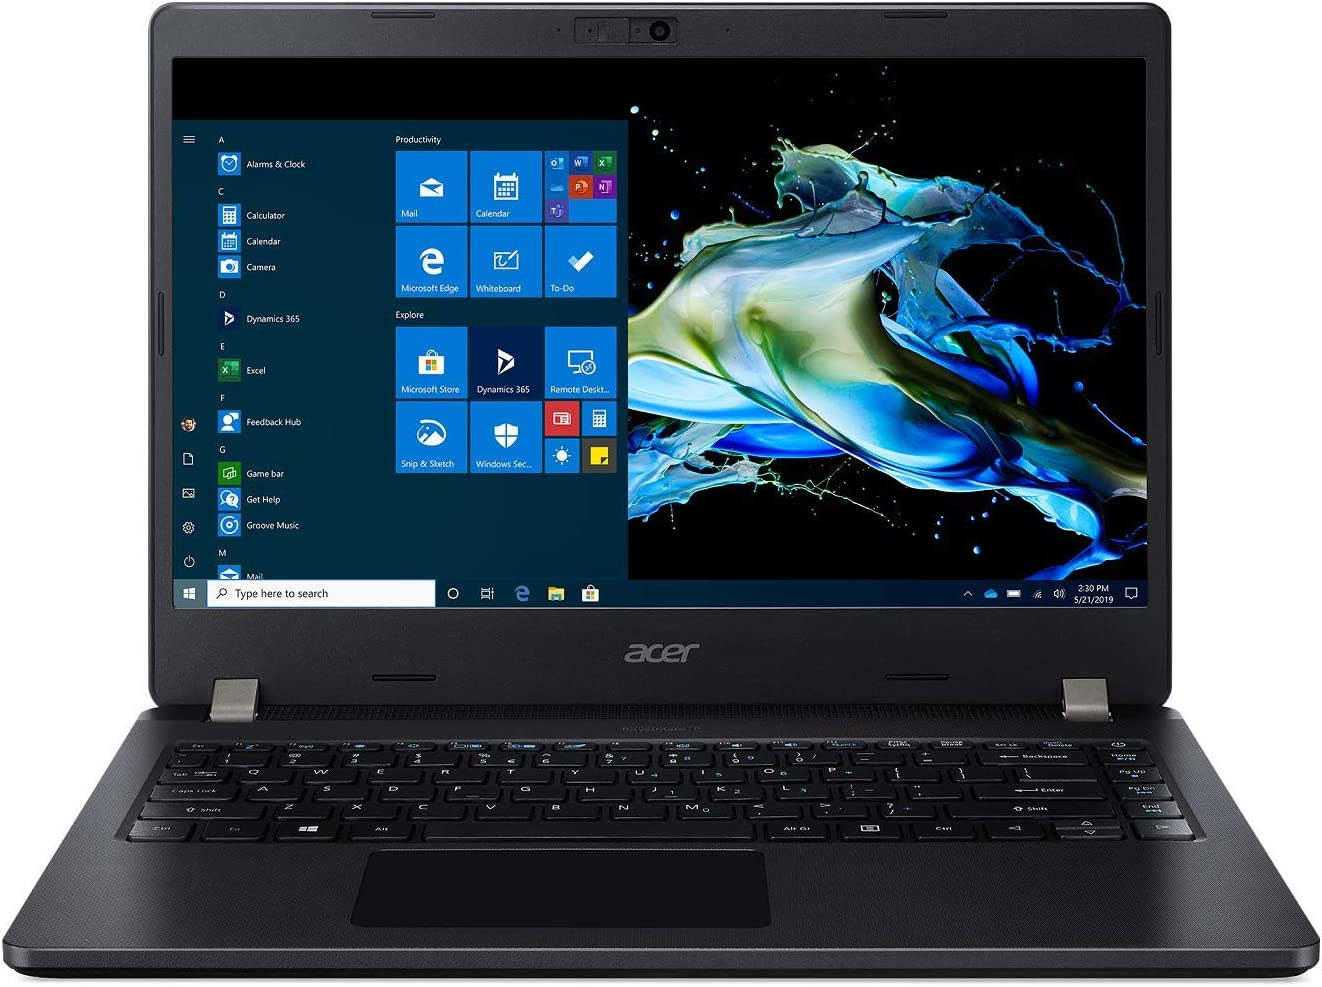 Acer Travelmate Intel i5-10th Gen 14-inch Display Thin and Light Laptop